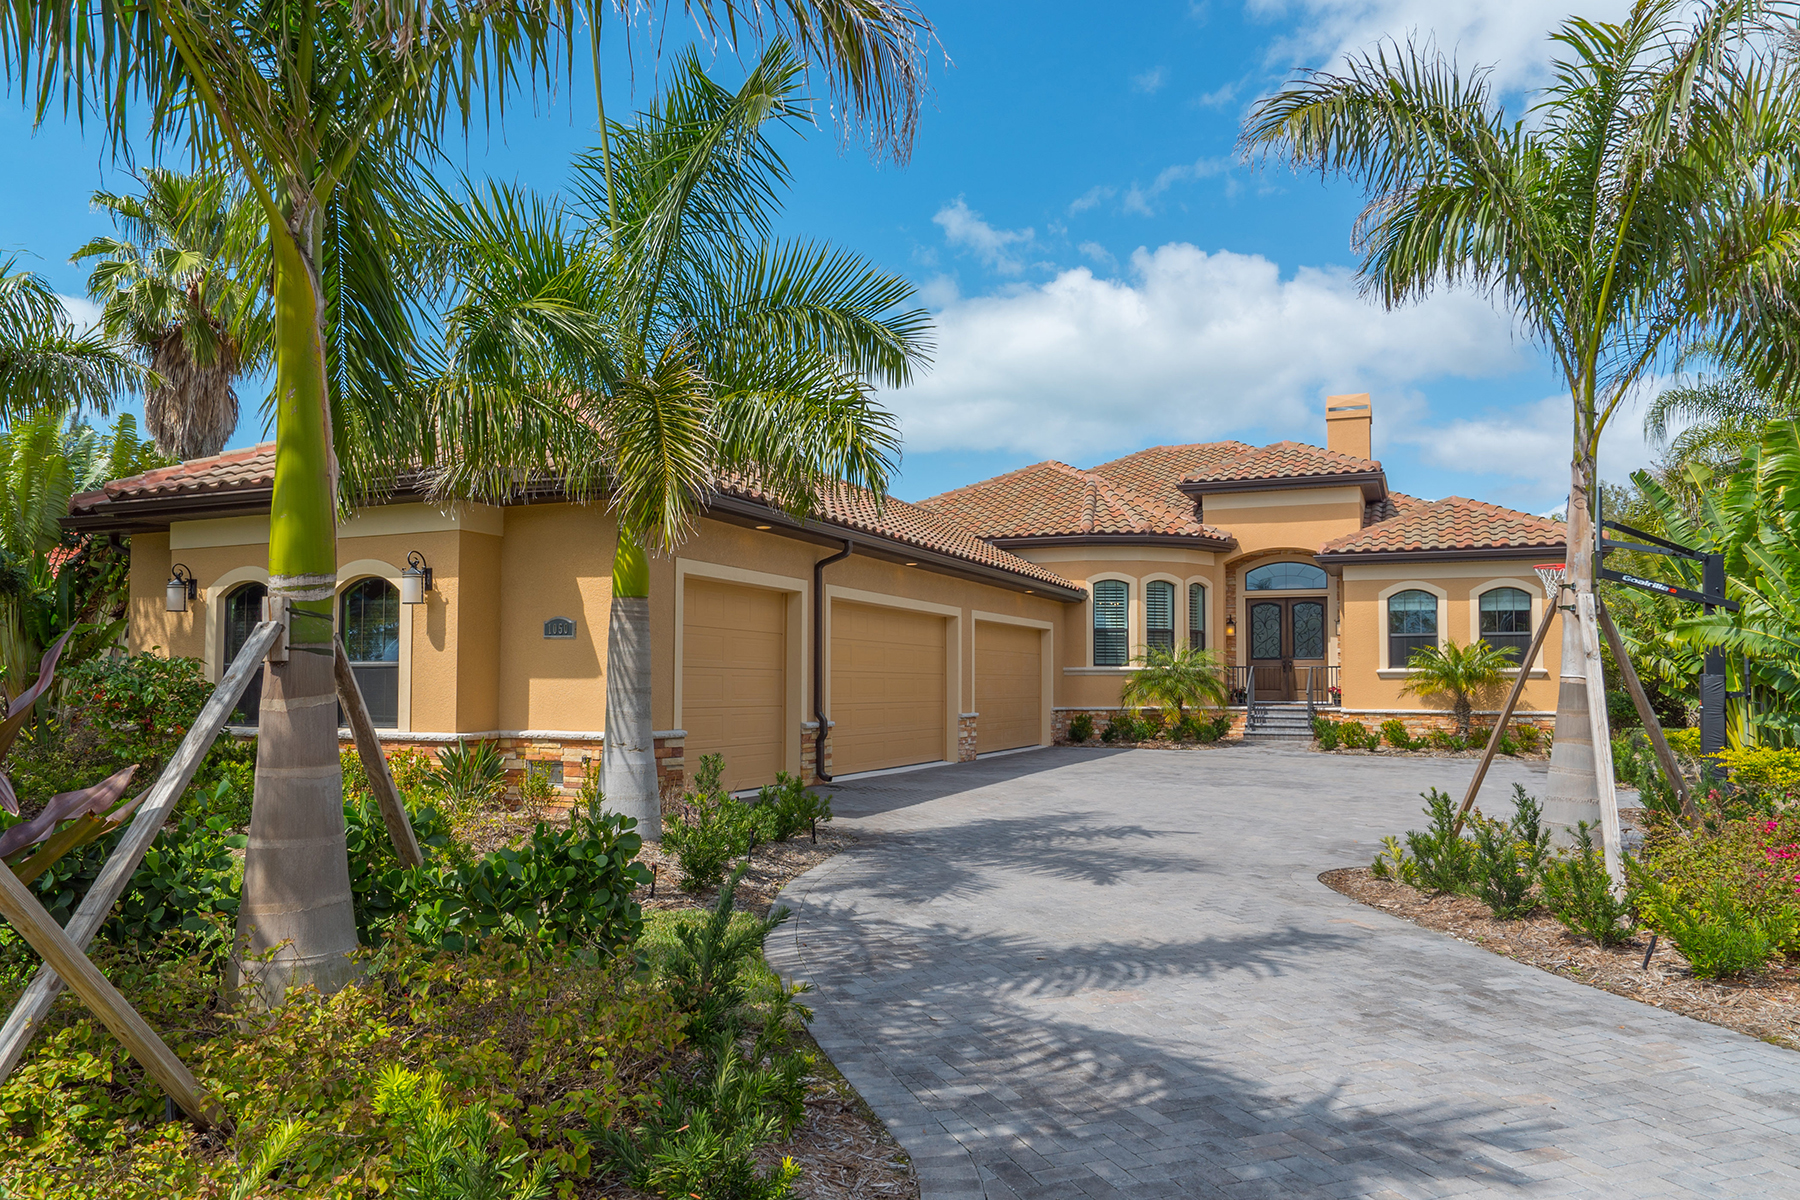 Single Family Home for Sale at CASEY KEY ESTATES 1050 Gulf Winds Way Nokomis, Florida, 34275 United States